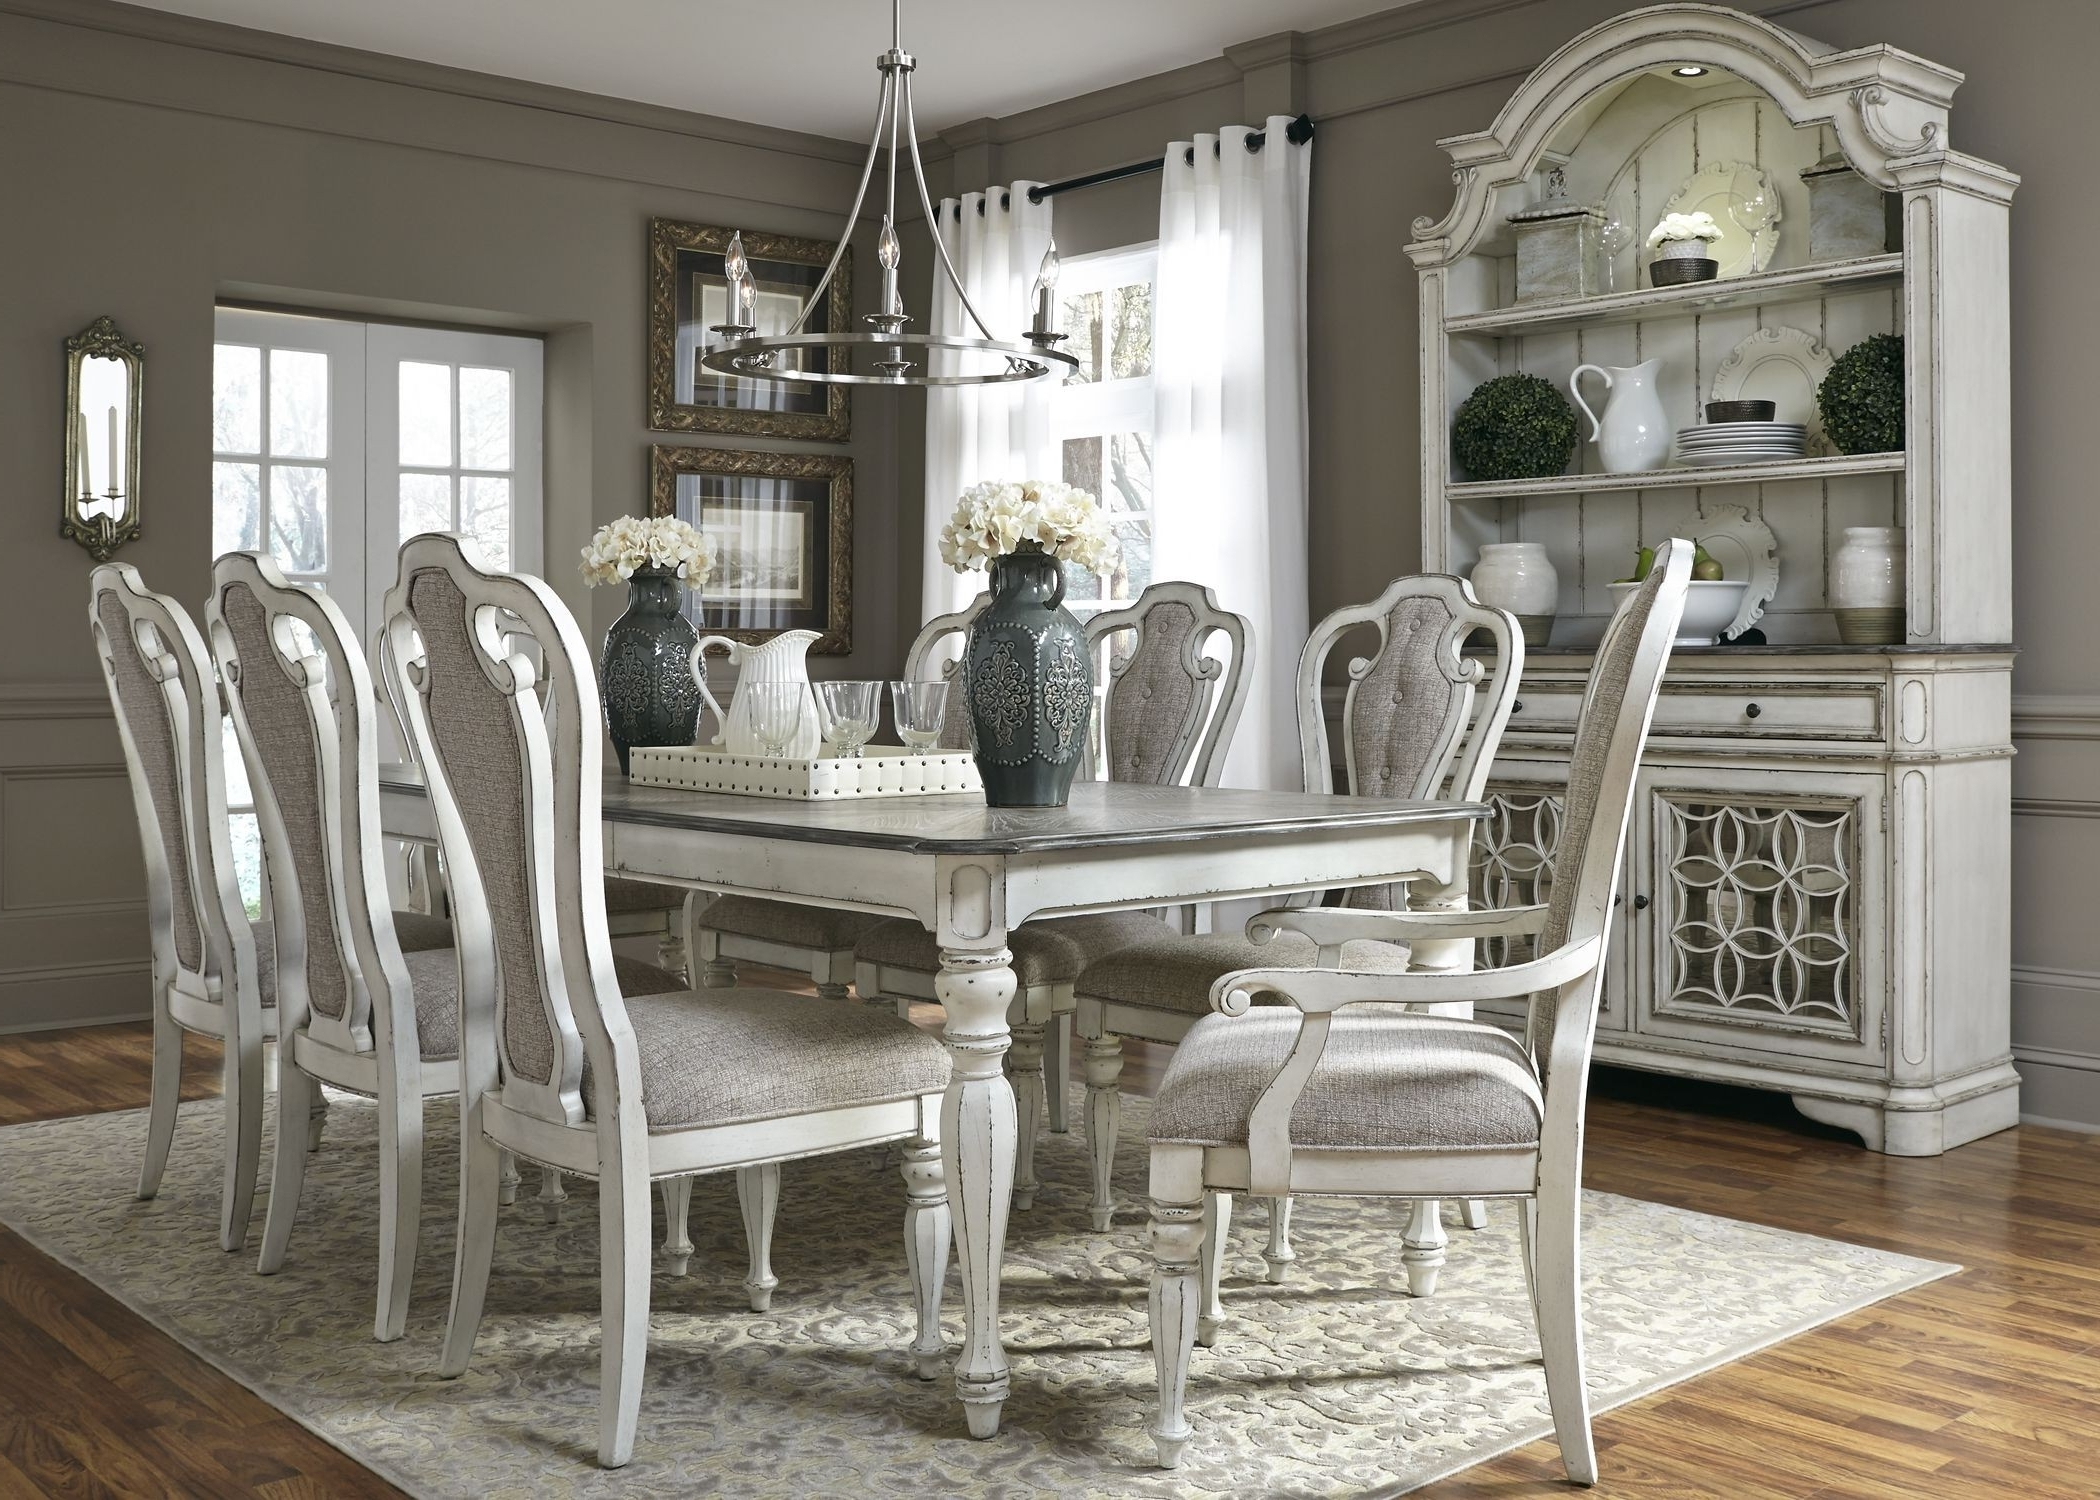 """Magnolia Manor Antique White 108"""" Extendable Rectangular Dining Room Within Well Known Magnolia Home Breakfast Round Black Dining Tables (View 18 of 25)"""